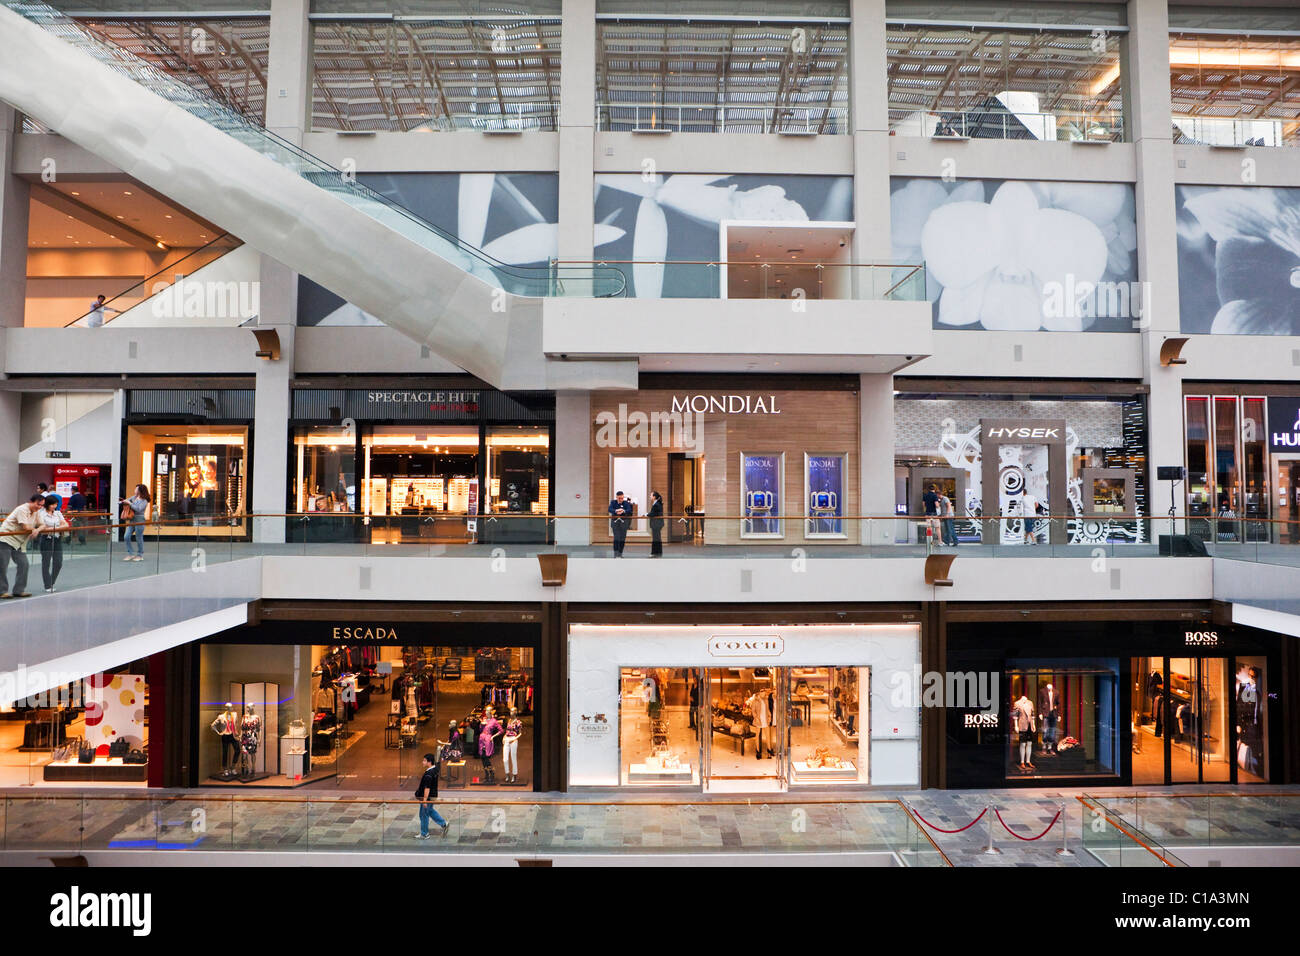 The Shoppes at Marina Bay Sands - a shopping mall in the  Marina Bay Sands hotel & casino complex, Singapore - Stock Image